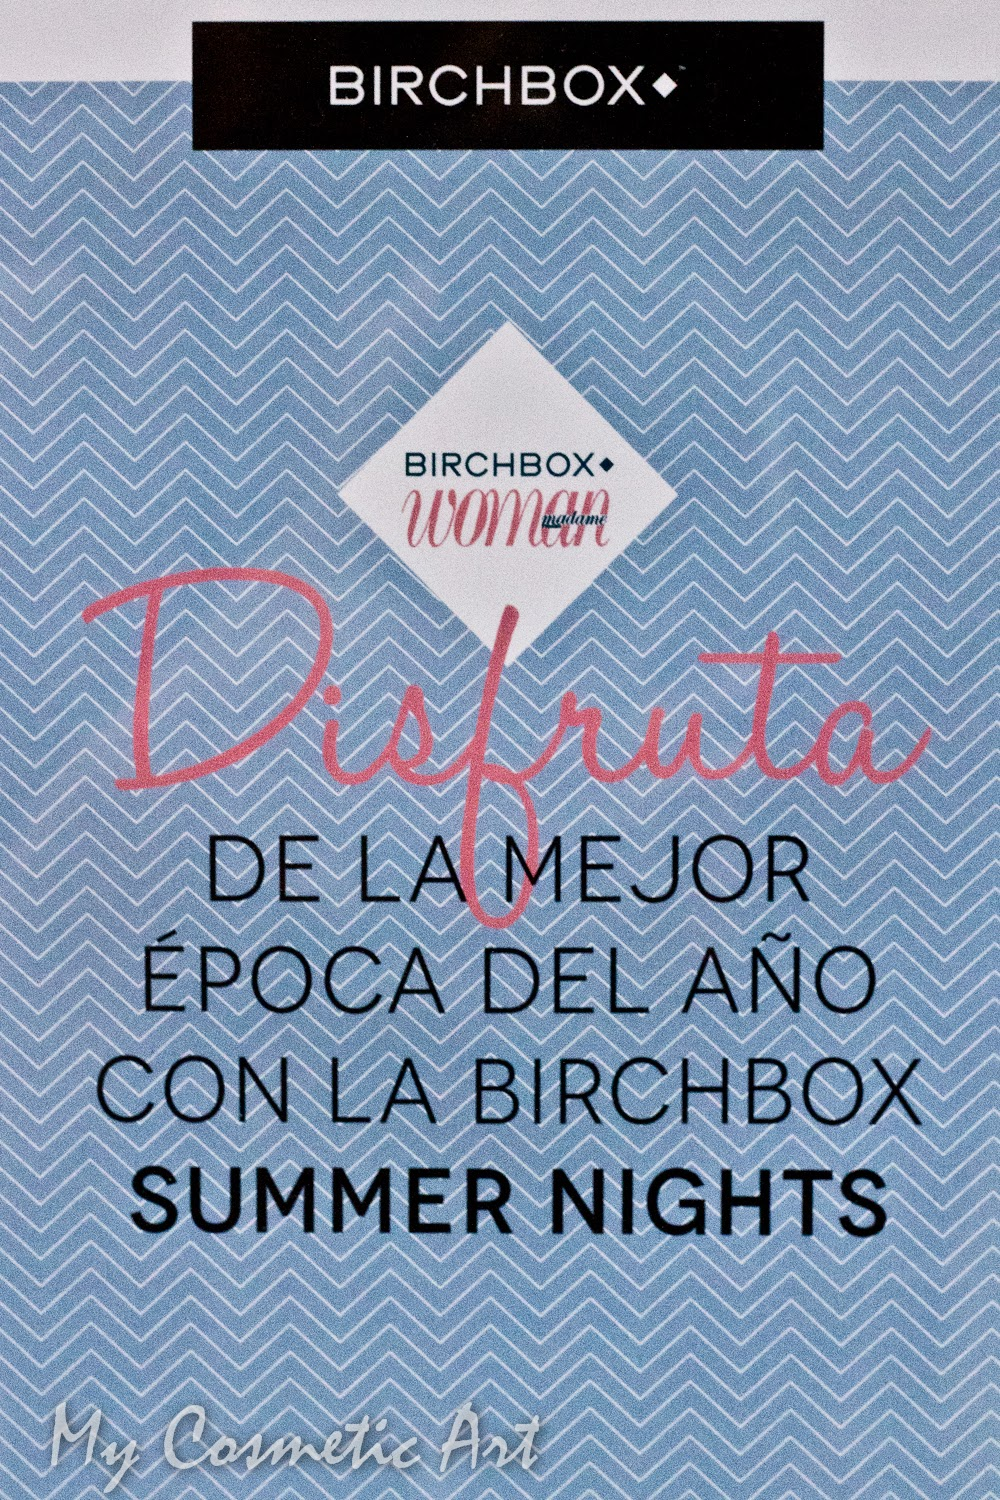 Summer Party de Birchbox en Madrid